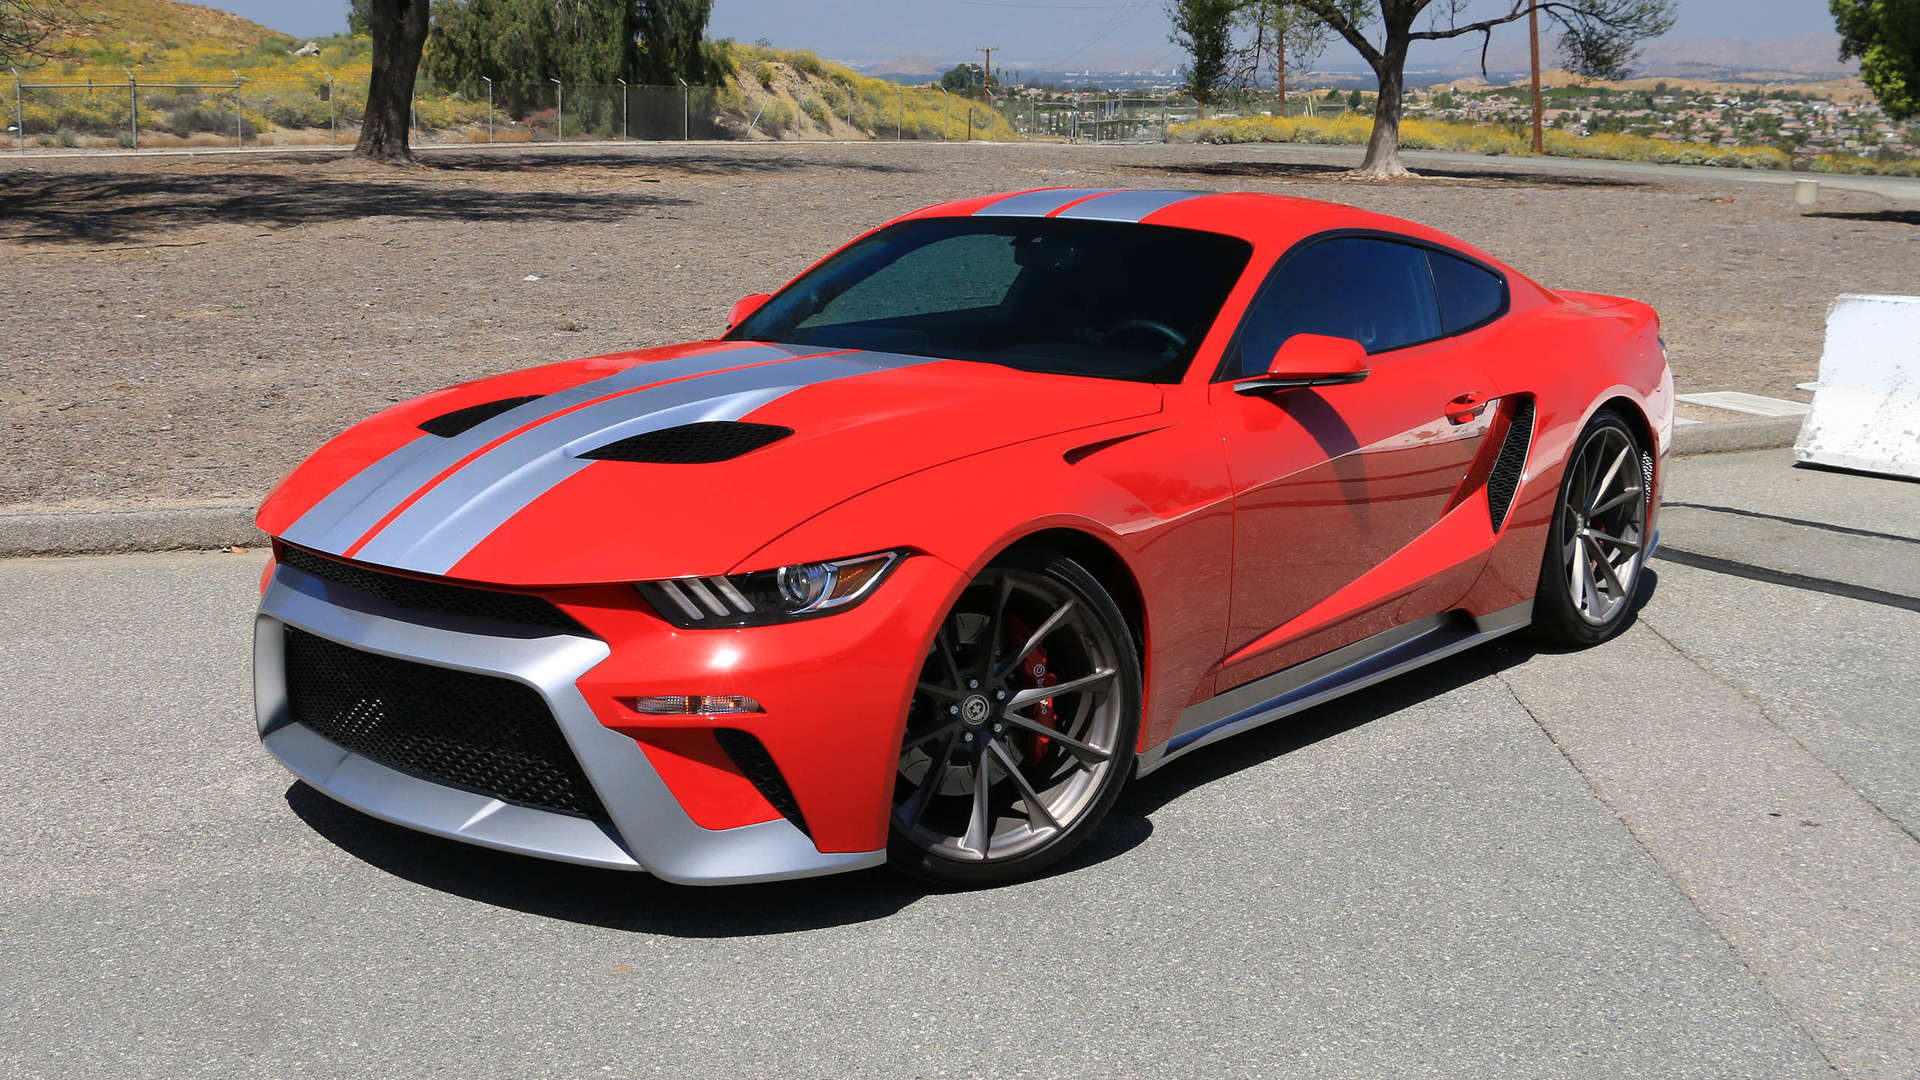 Ford Mustang Gt Modified By Zero To 60 Designs First Drive